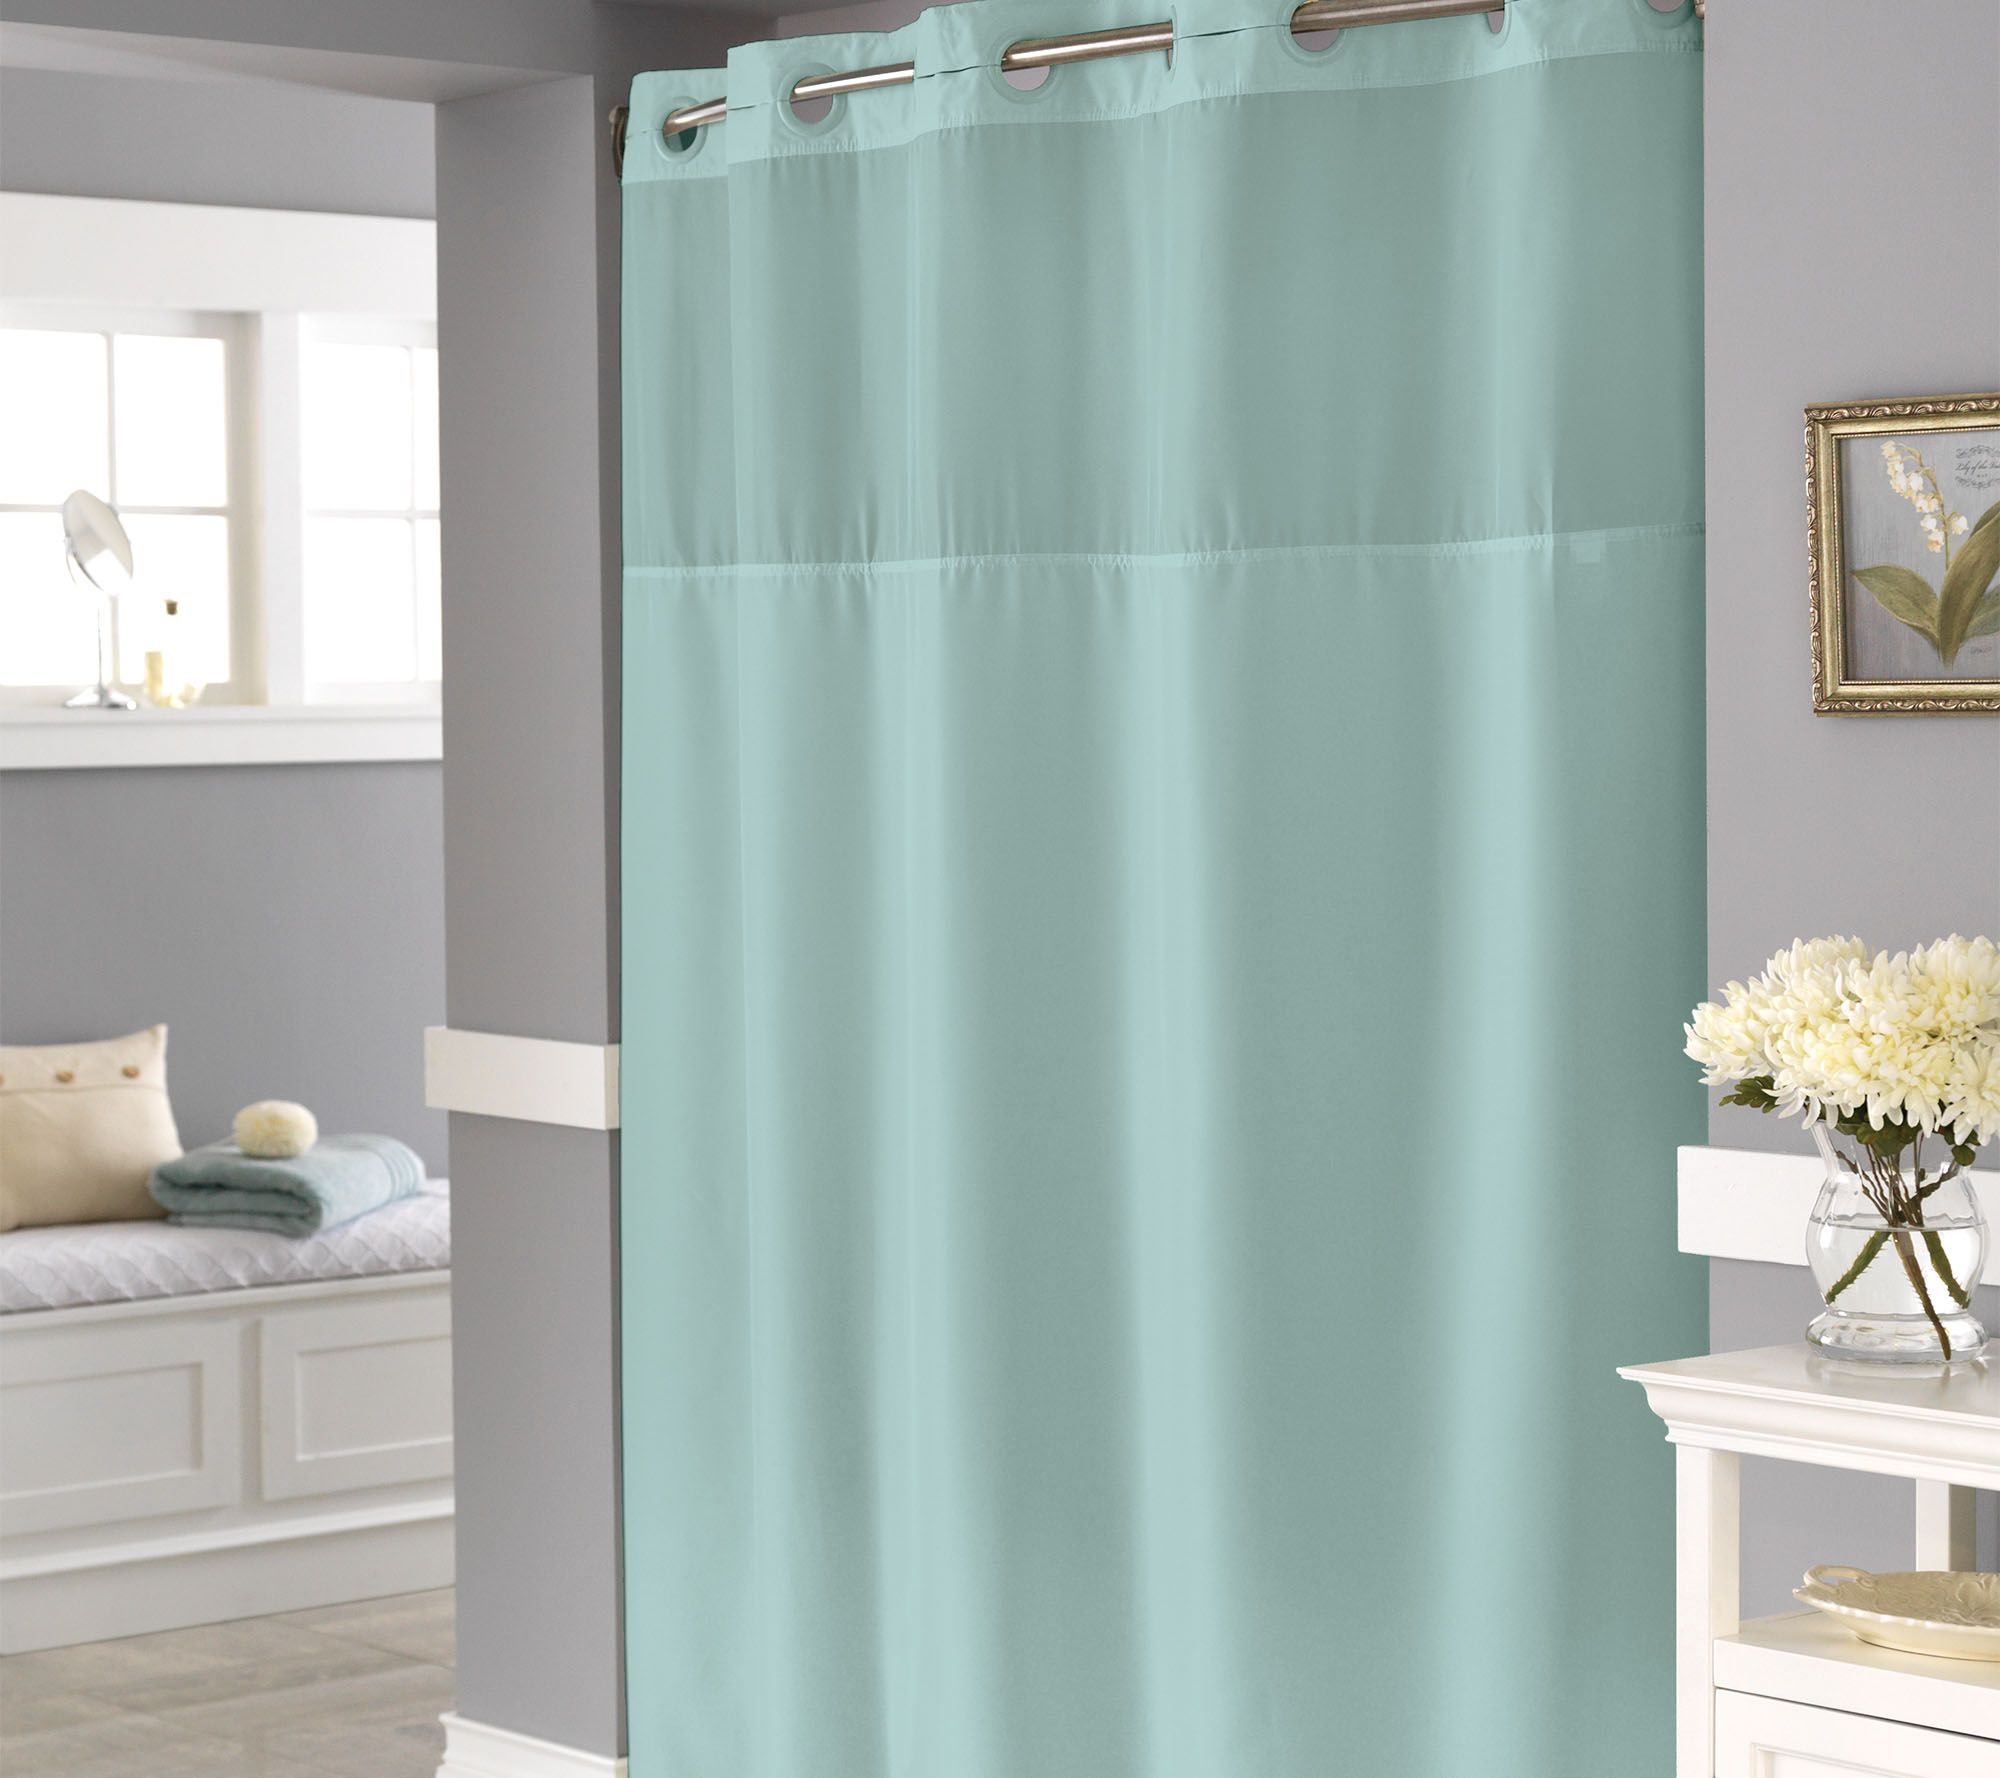 blue curtain bath home overstock orders taupe chevron over shipping clay niantic park shower madison concord alder free product curtains bedding on